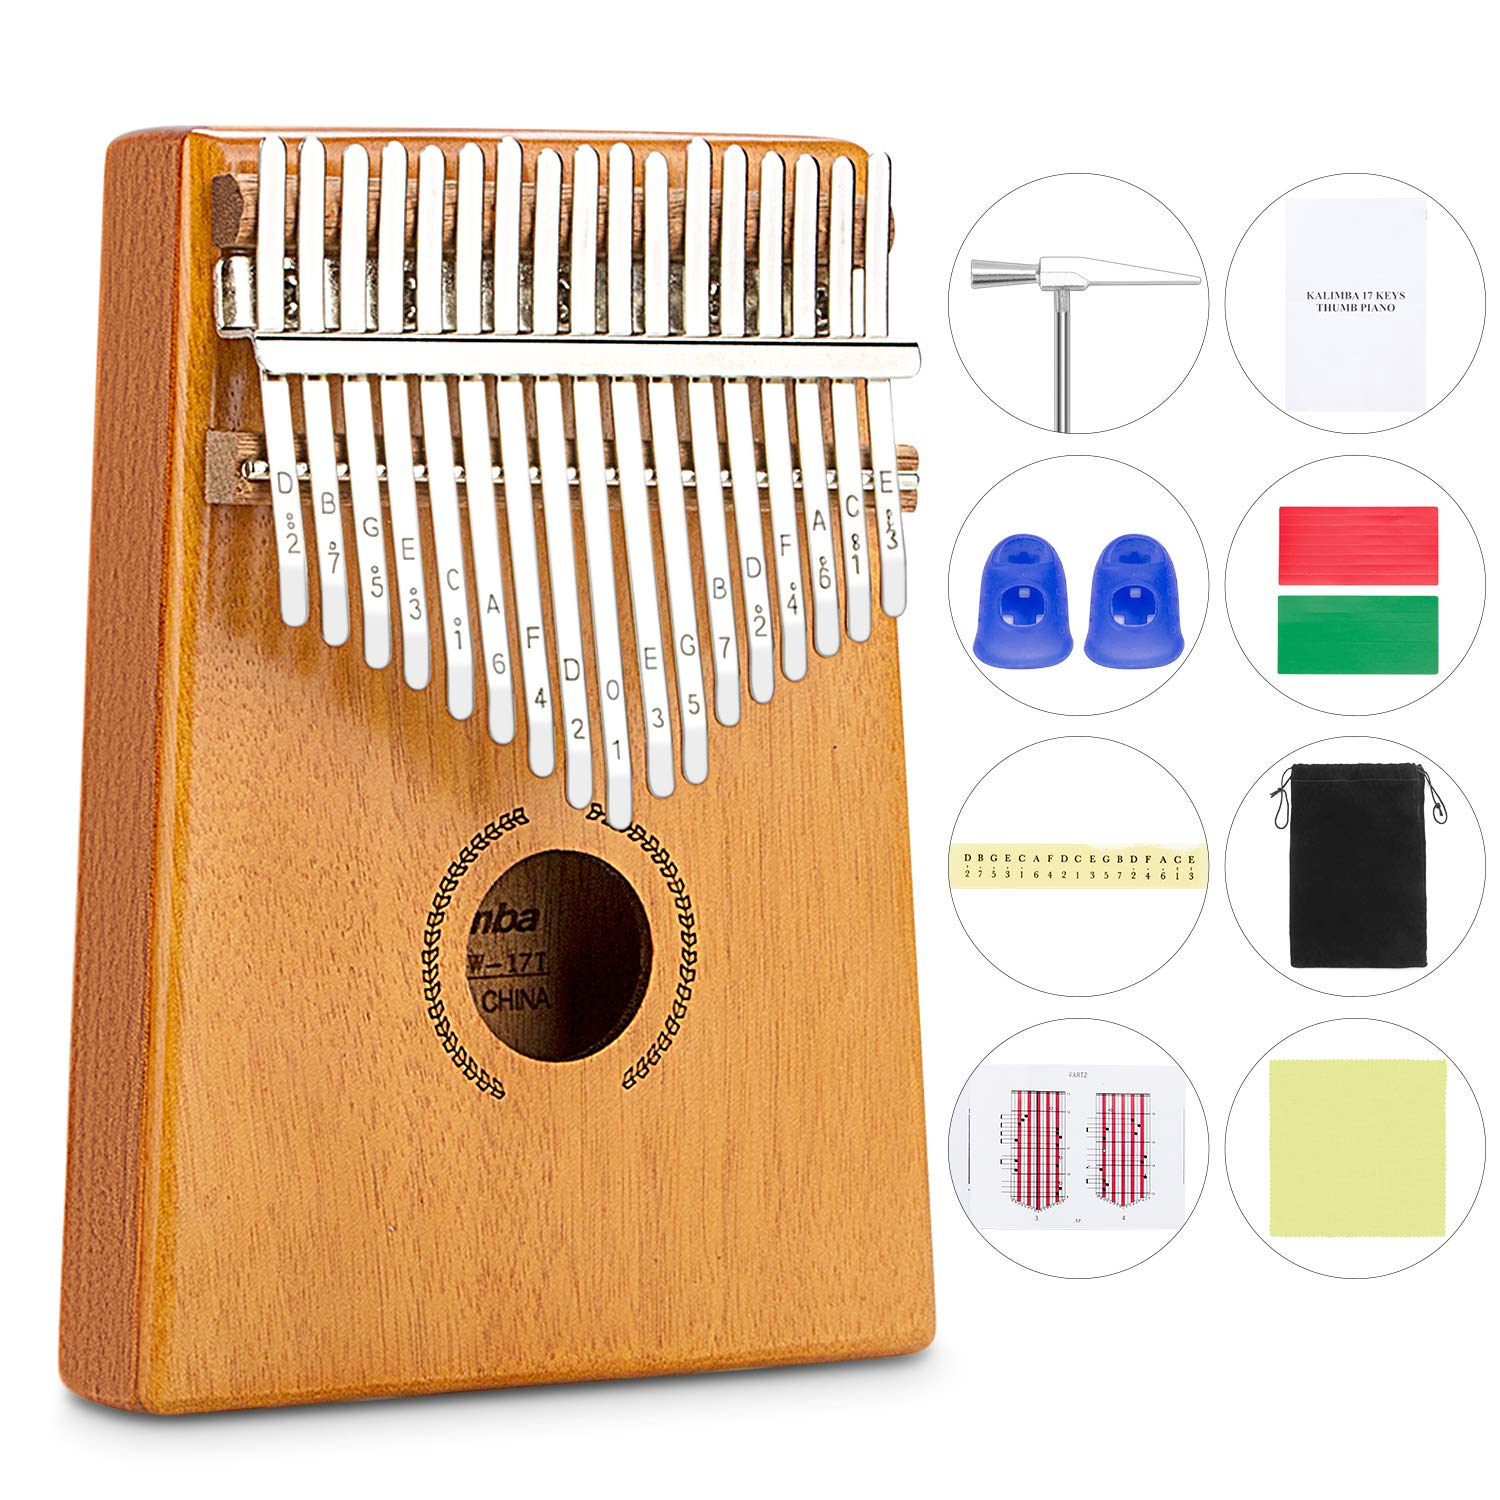 Kalimba 17 Keys,Thumb Piano with Tune Hammer Music Book Finger Piano Toys Gifts for Kids Adult Beginners Professional